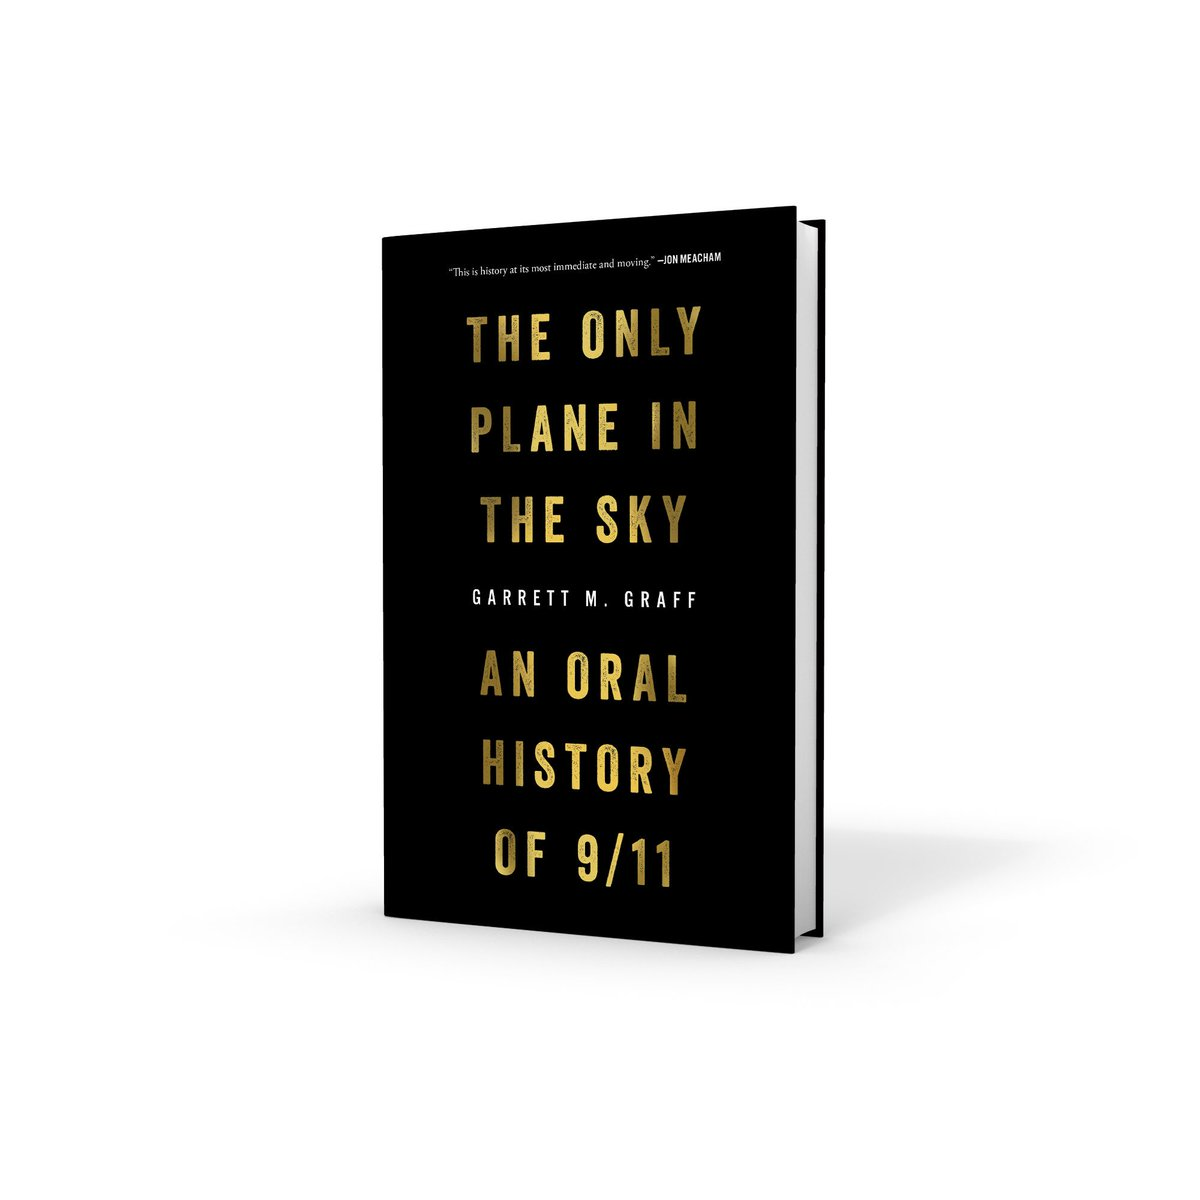 Thank you to all who have followed along today. If you're interested in hearing more of these stories, you can find The Only Plane in the Sky here: